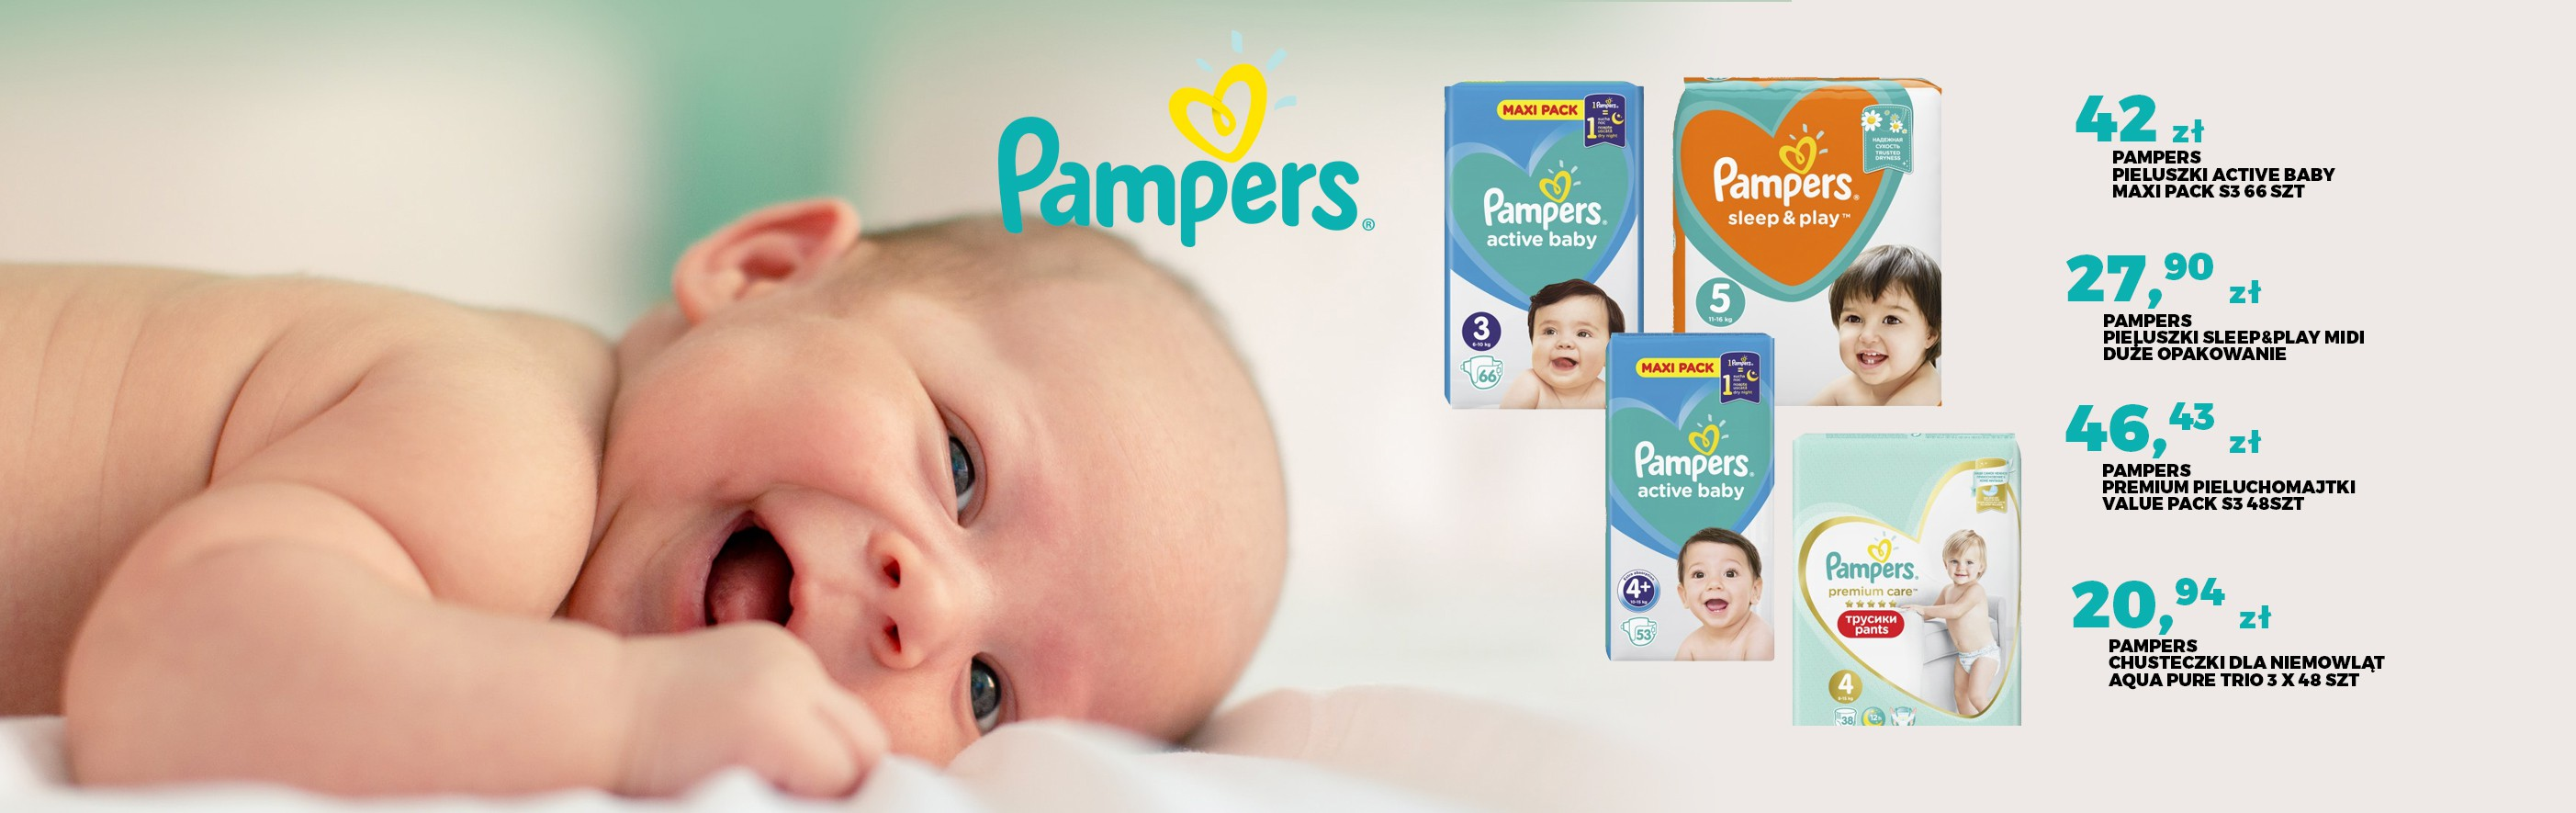 promocja pampers 2